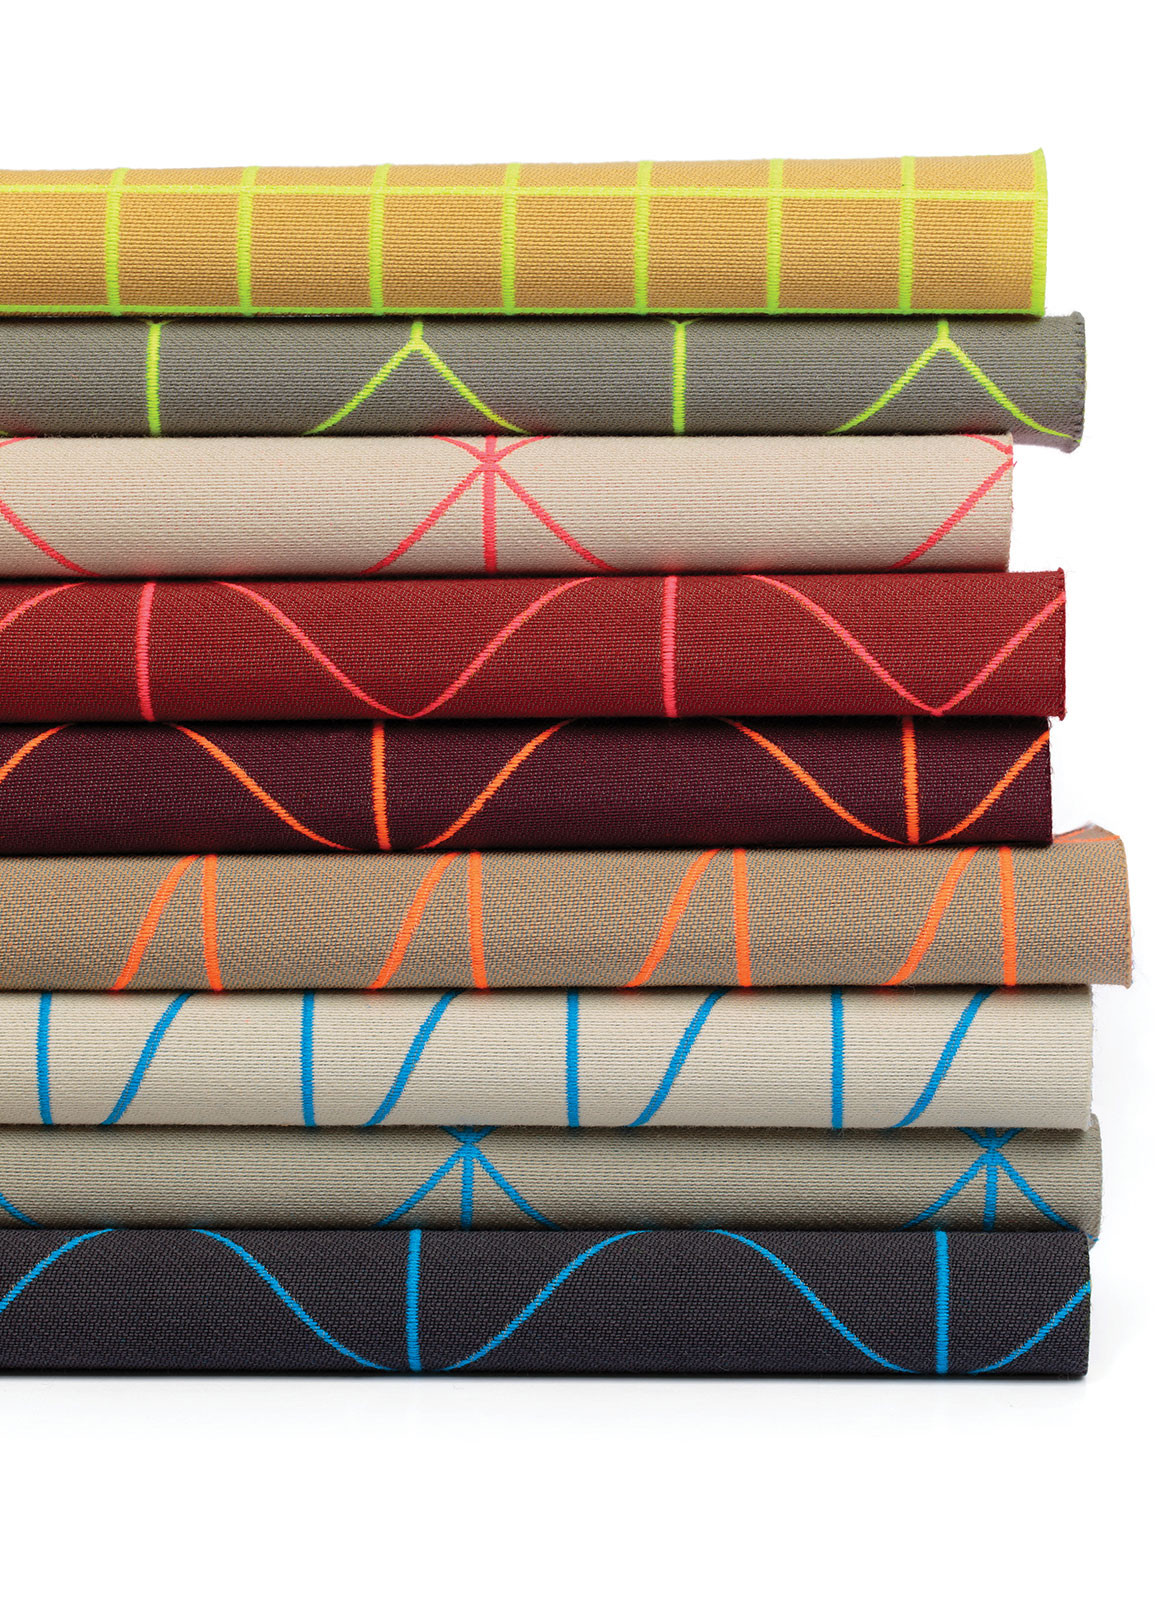 Habitus Loves Statement Upholstery Kvadrat Maharam